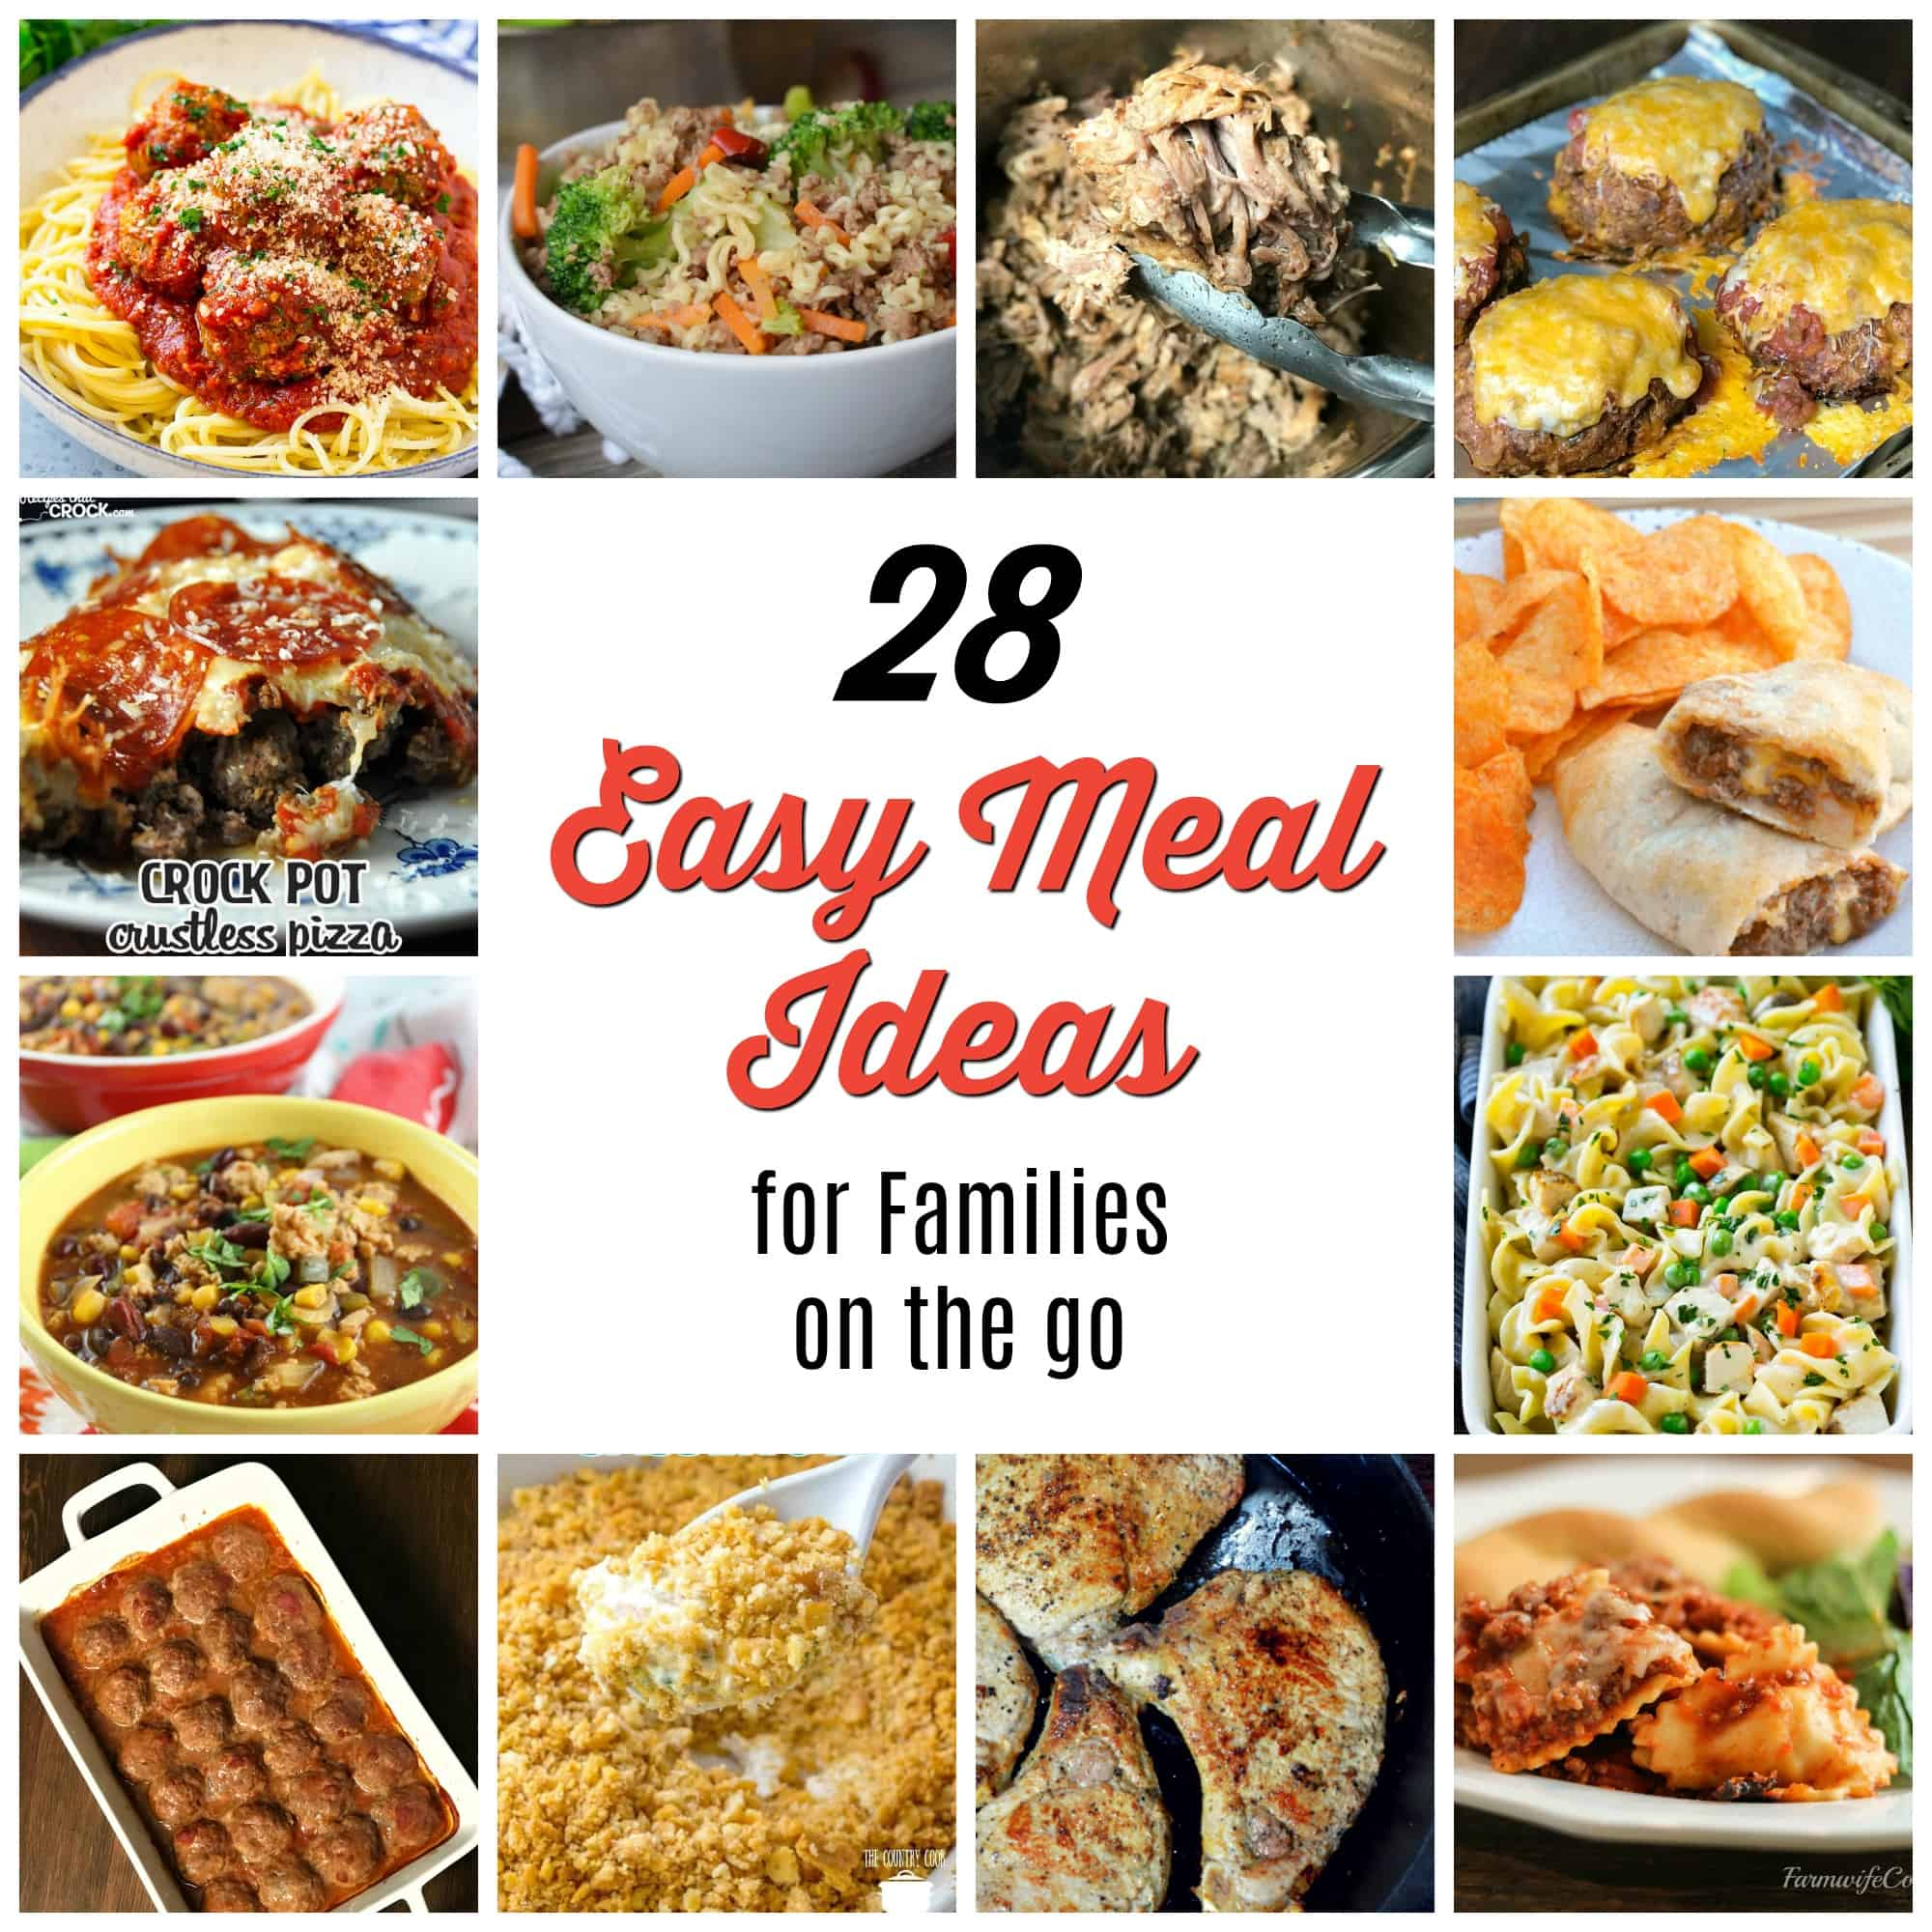 Our family is always needing new quick and easy meal ideas.  We have a few favorites like The Best Taco Meatloaf and Instant Pot Pulled Pork, but it's always great to find new recipes.  So I reached out to friends and compiled 28 Easy Meal Ideas for Families on the Go.